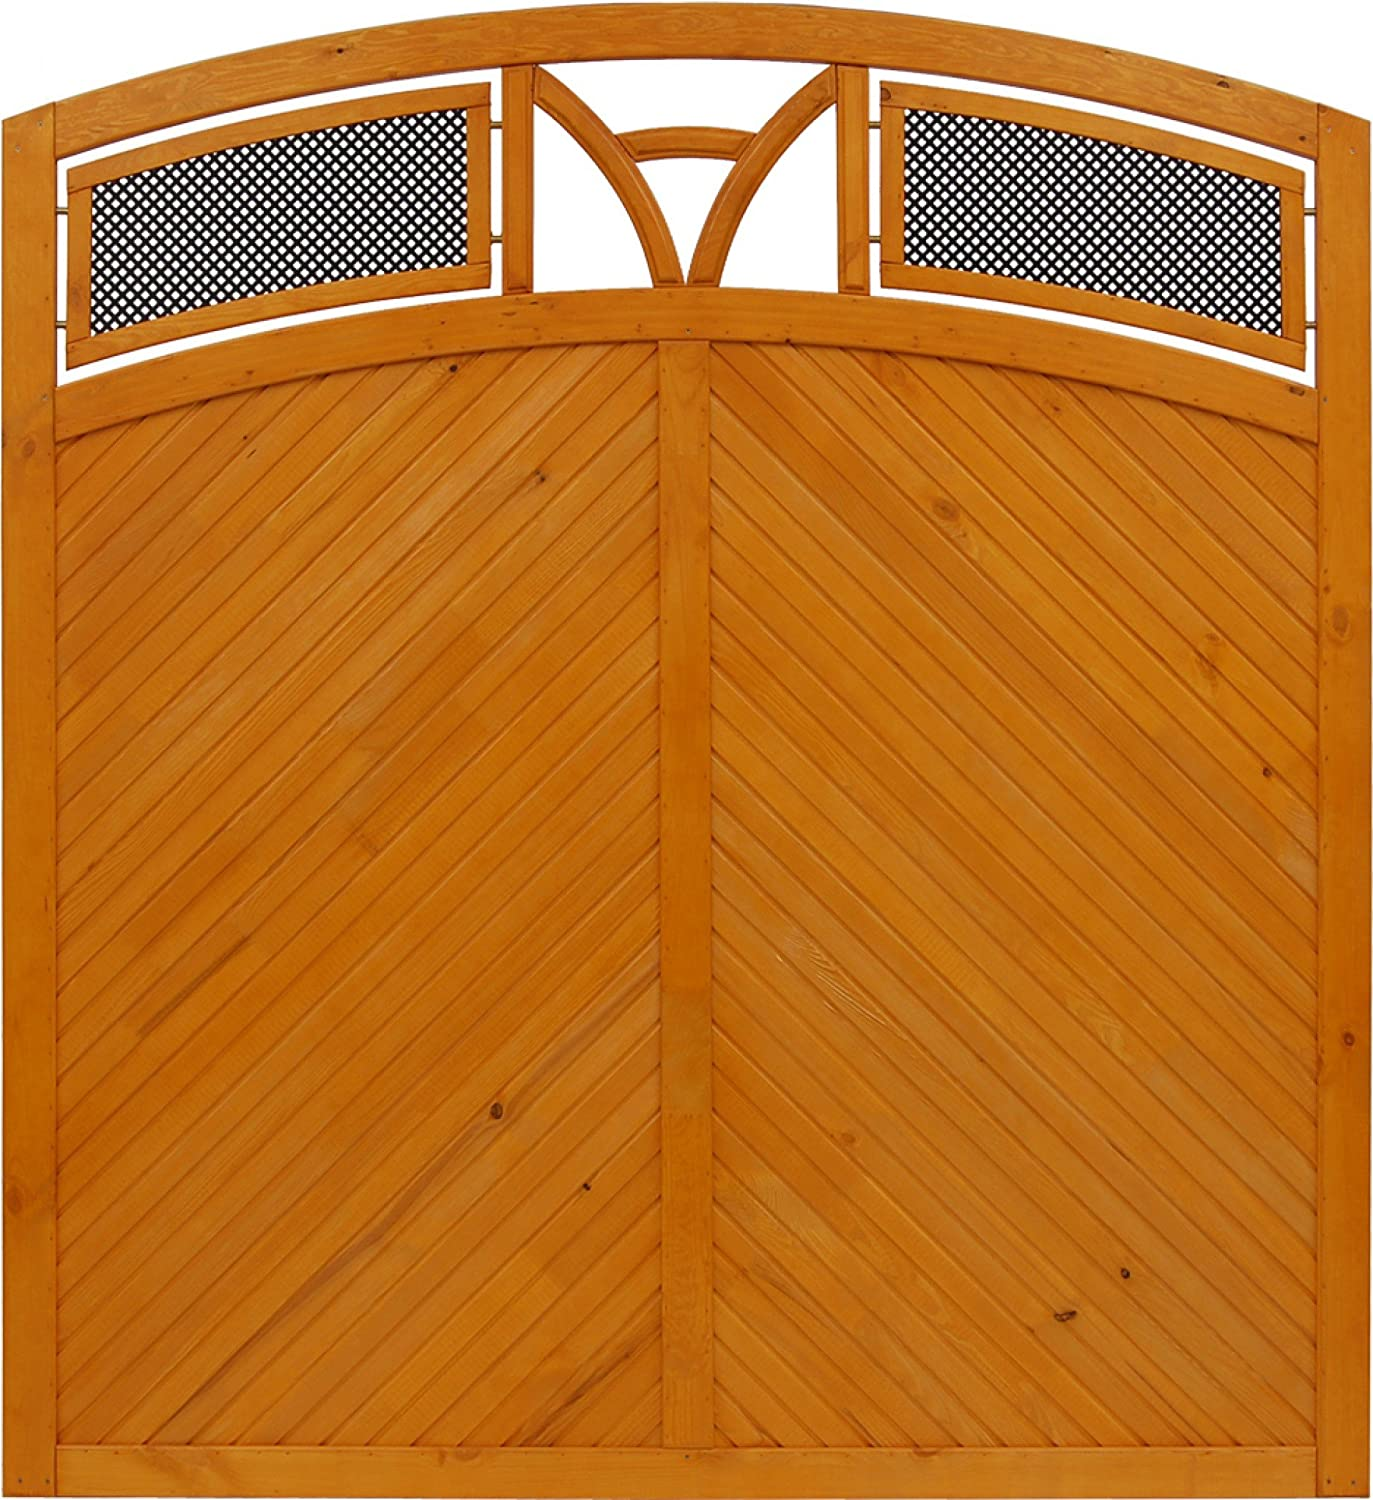 Andrewex wooden fence, fencing panel, garden fence 180 195 x 180, varnished, pinie